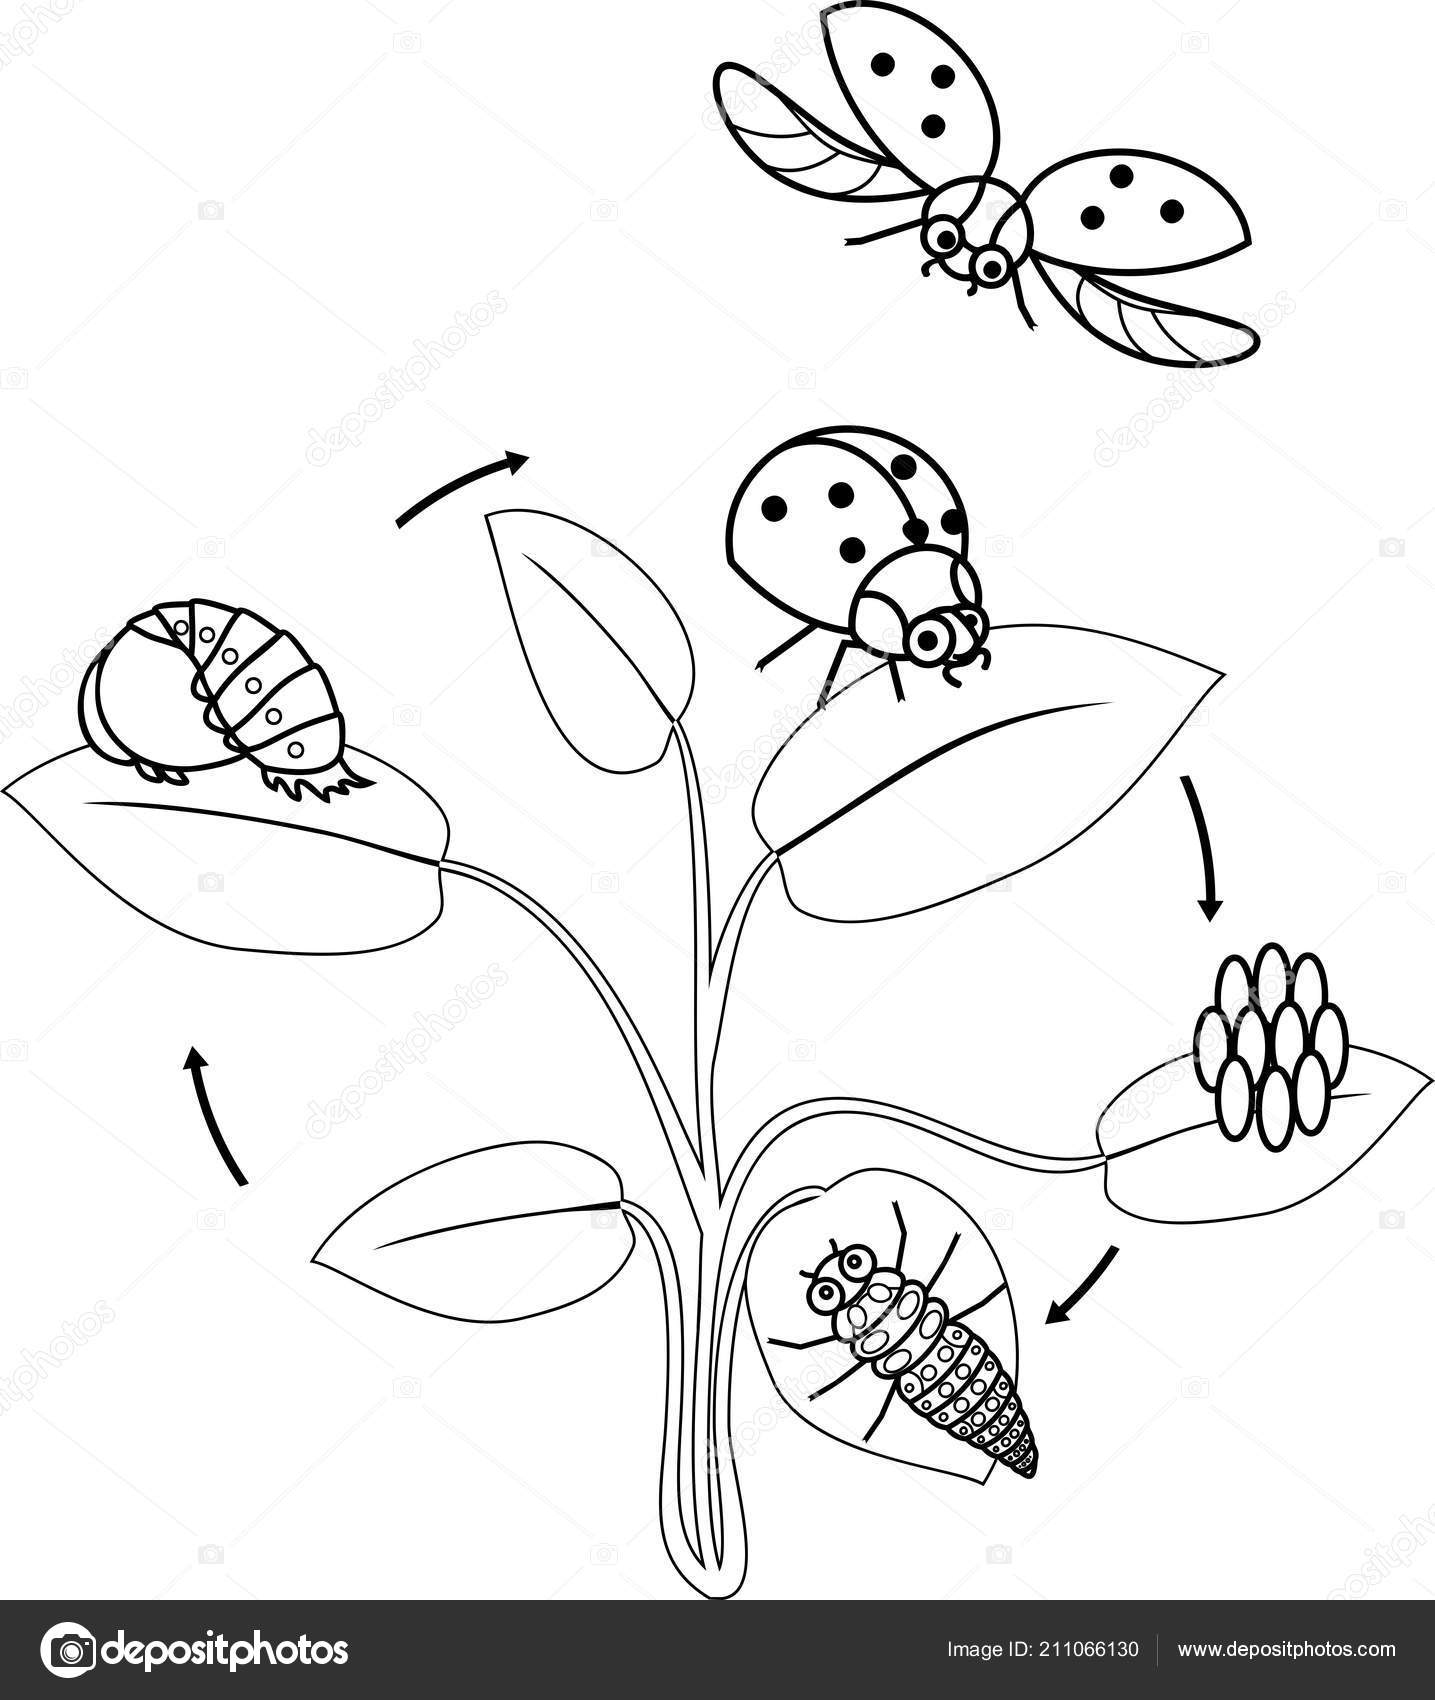 Life Cycle Ladybug Coloring Page Sequence Stages Development Ladybug